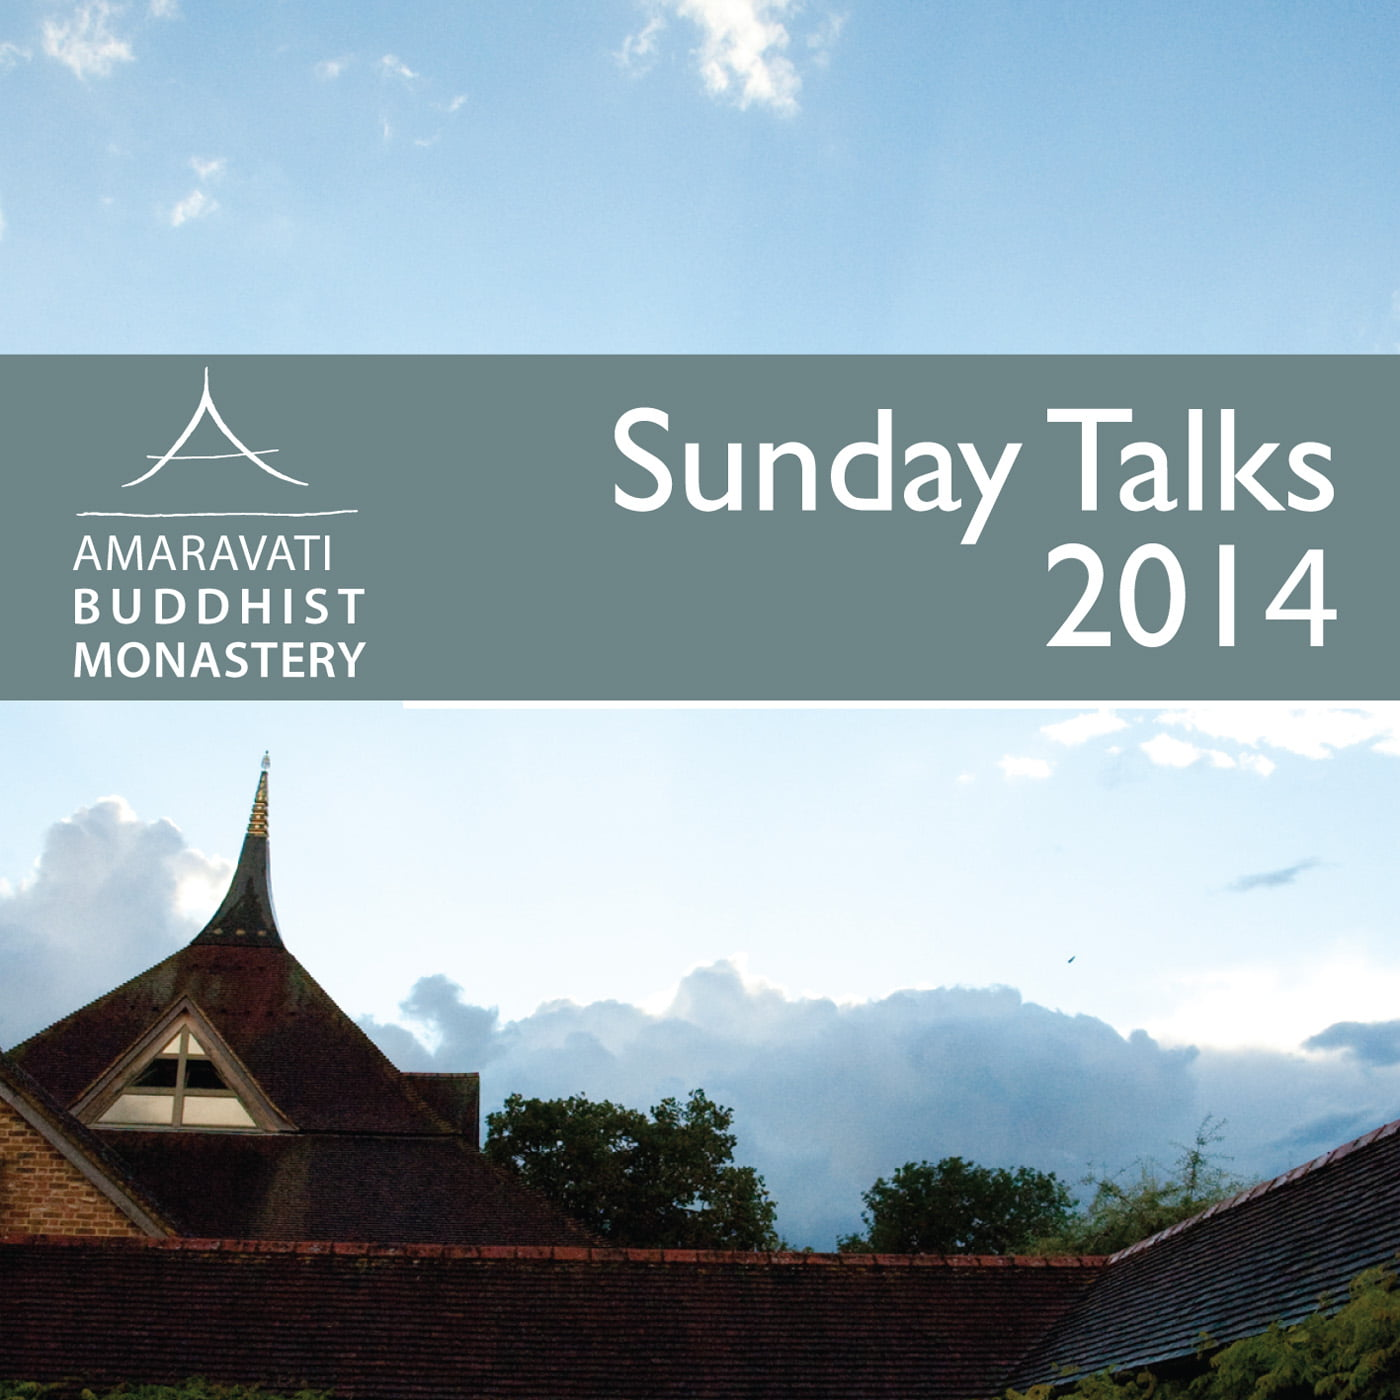 Sunday Talks 2014